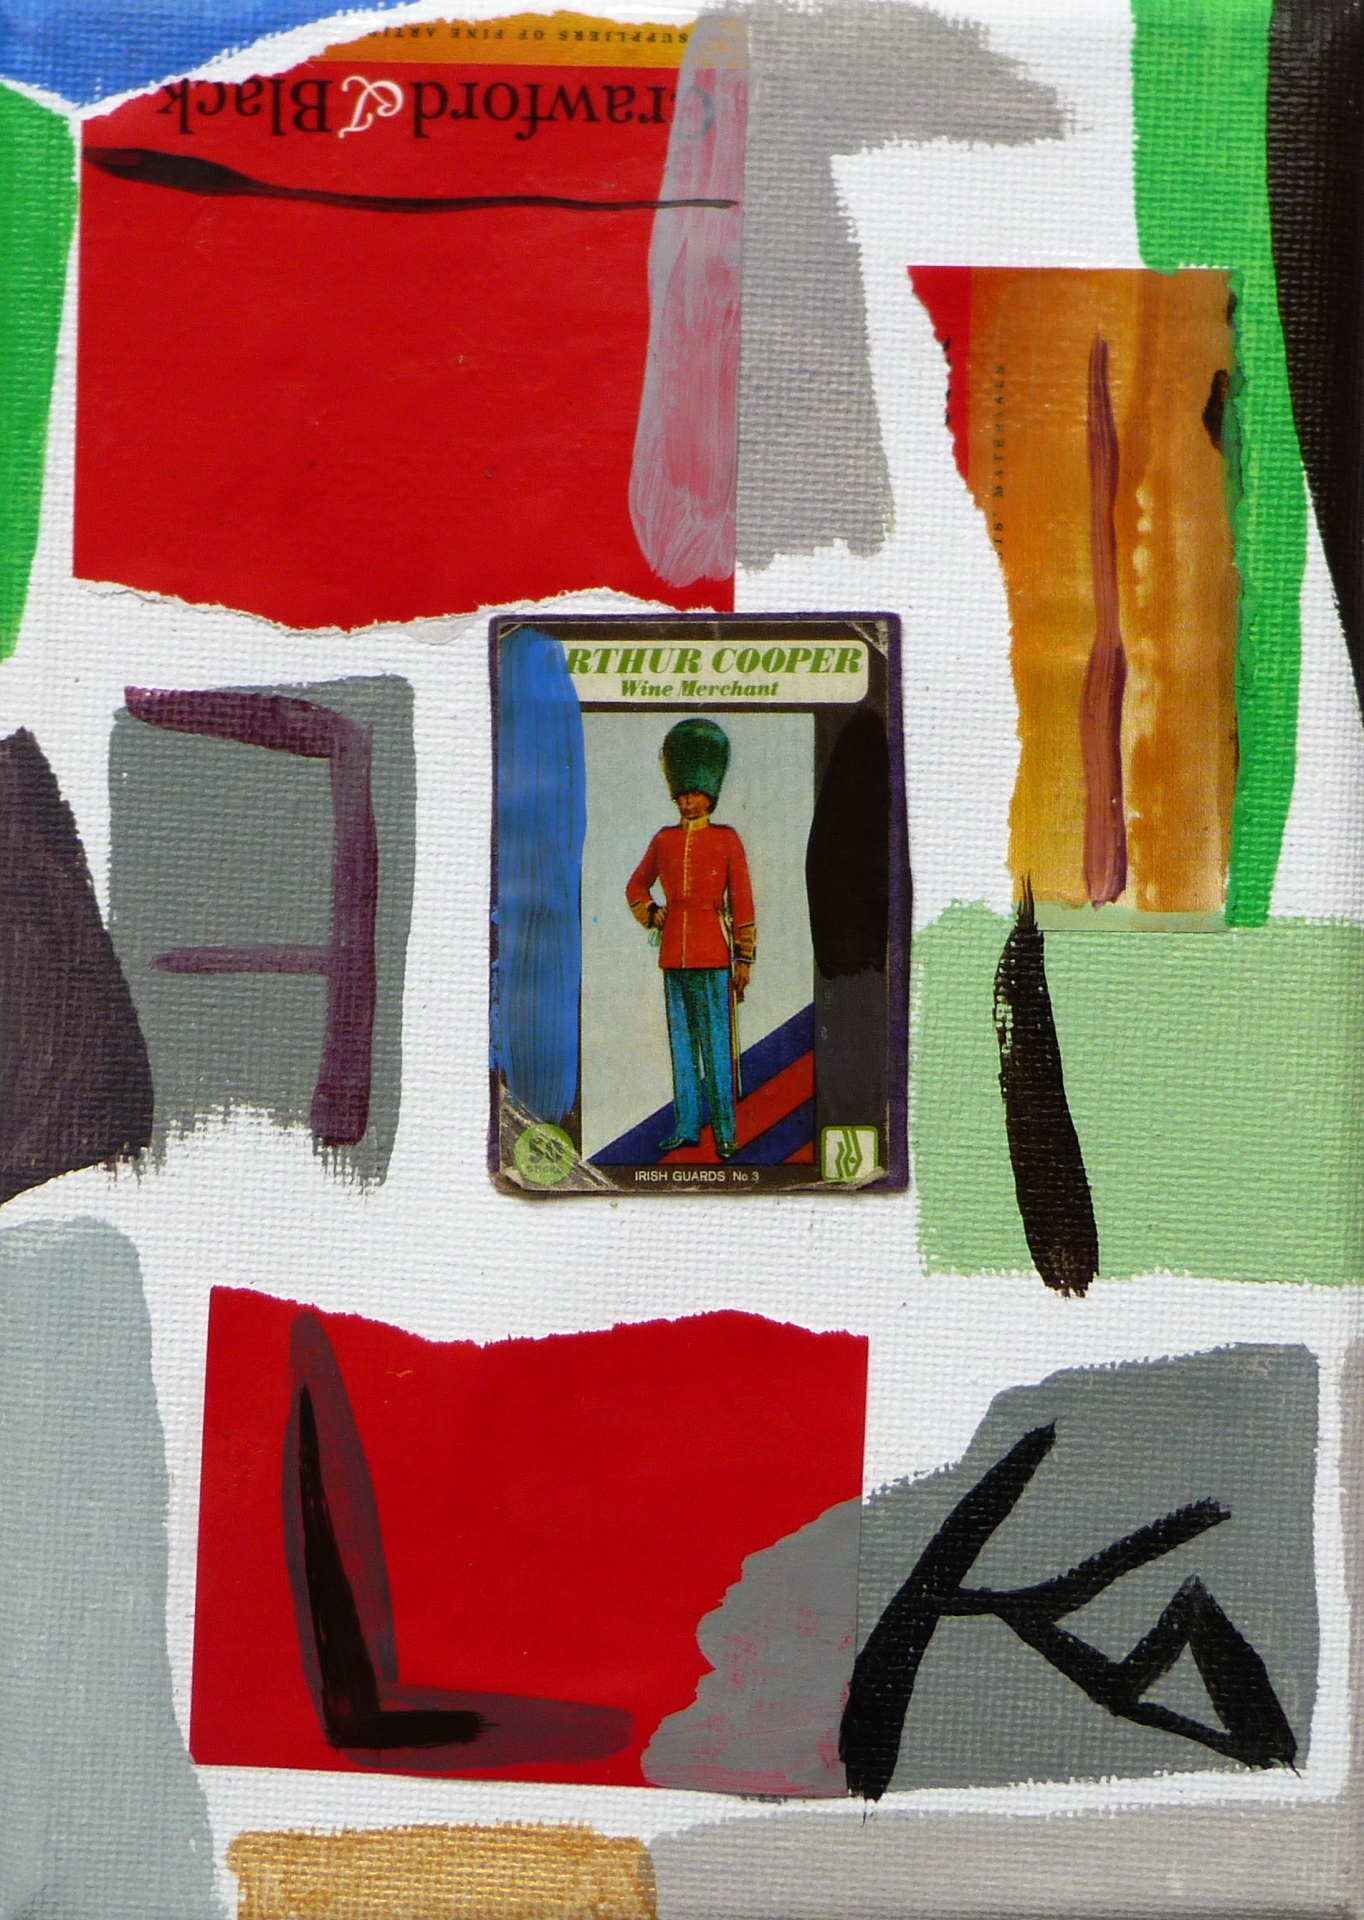 Matchbox Series 29. Arthur Cooper Matchbox and Acrylic on Canvas. 12.7x17.7x1.5cm. 2014.